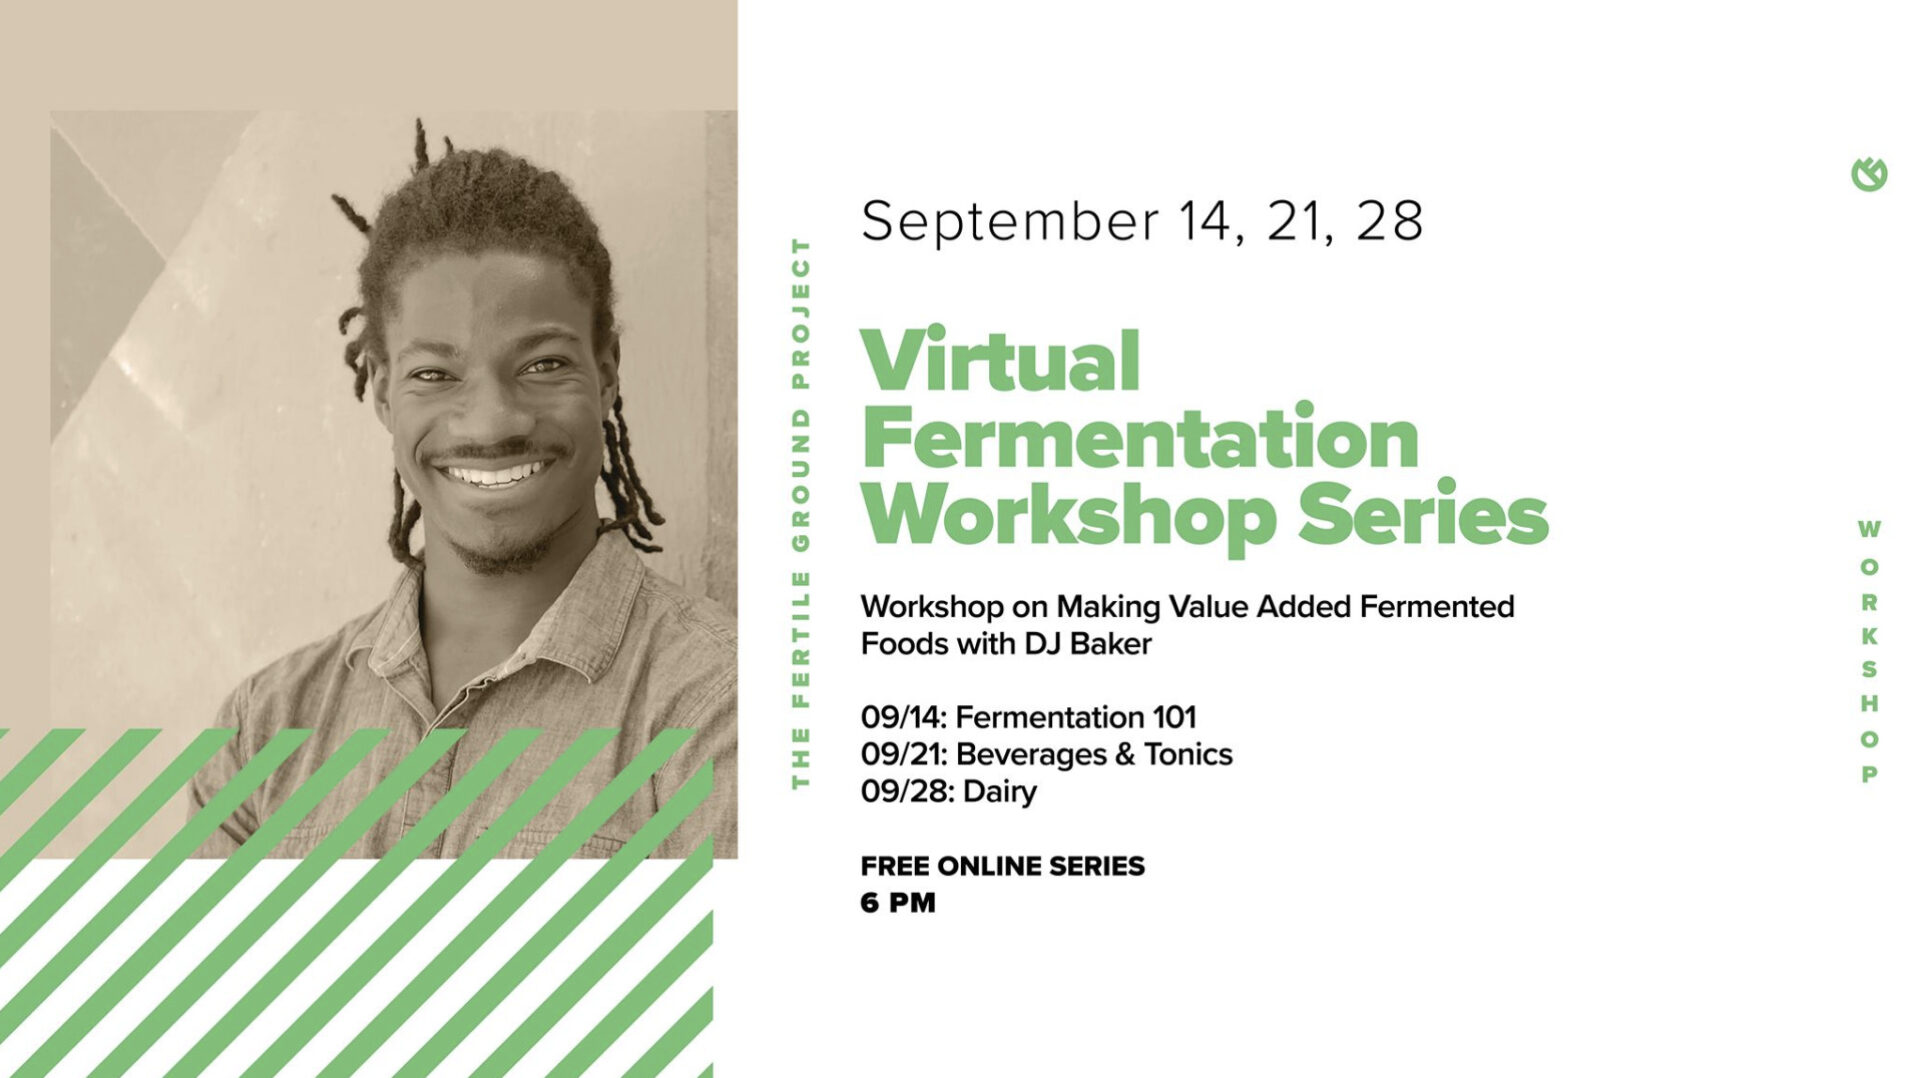 Virtual Fermentation Workshop Series